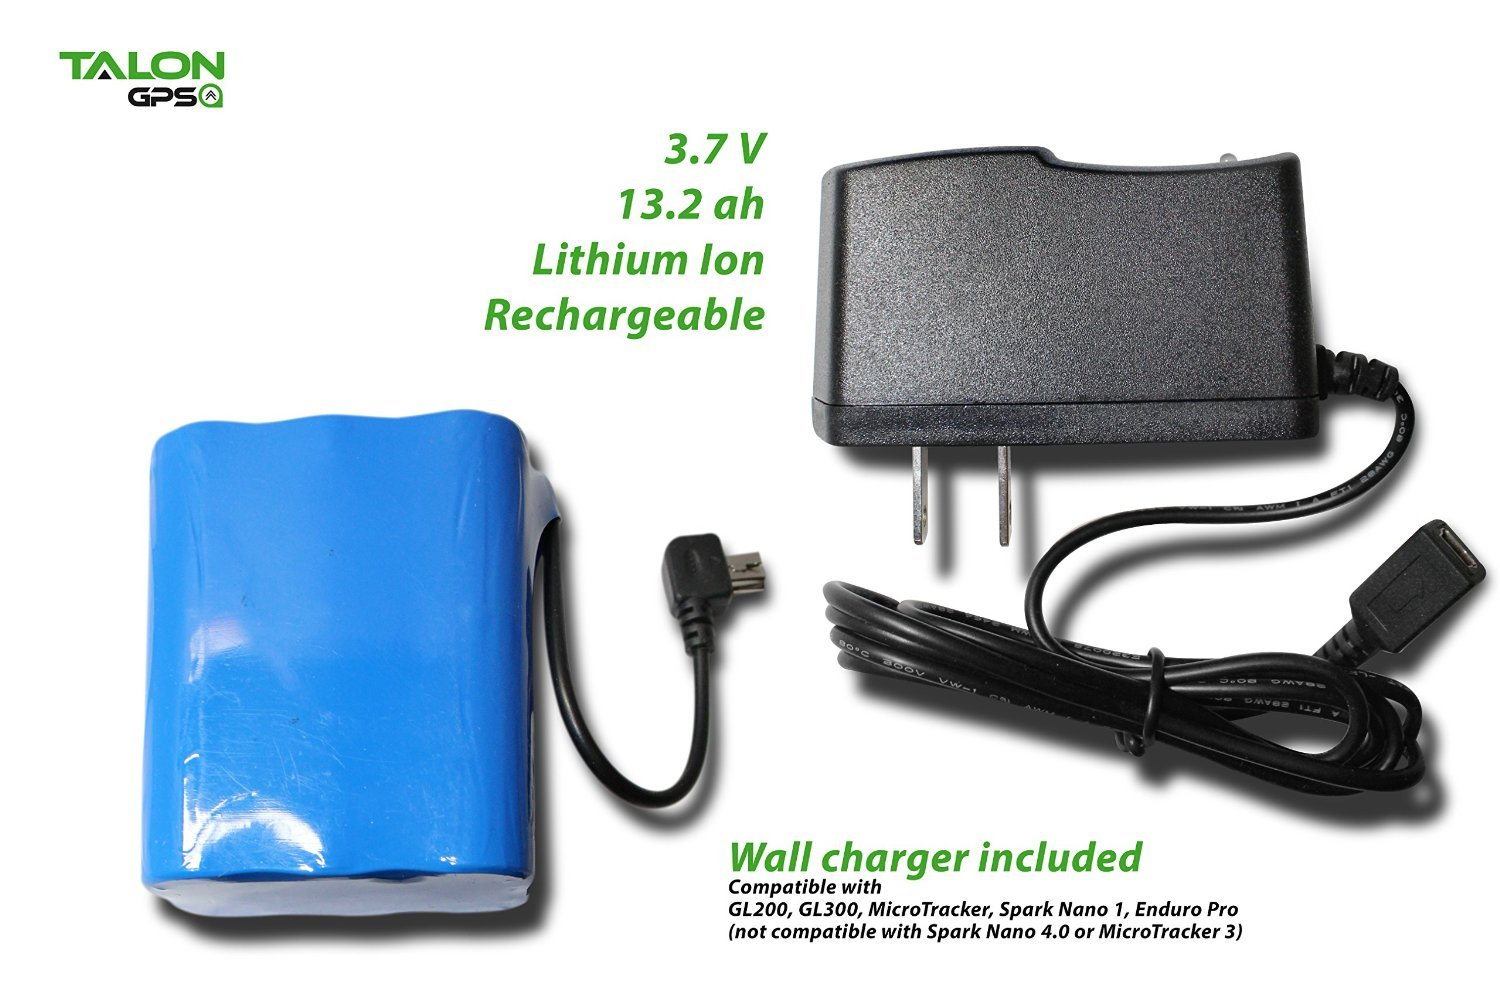 6 Cell Extended Battery Pack and Charger for Spark Nano 3.0, GL200, GL300 and GL300VC by Talon GPS